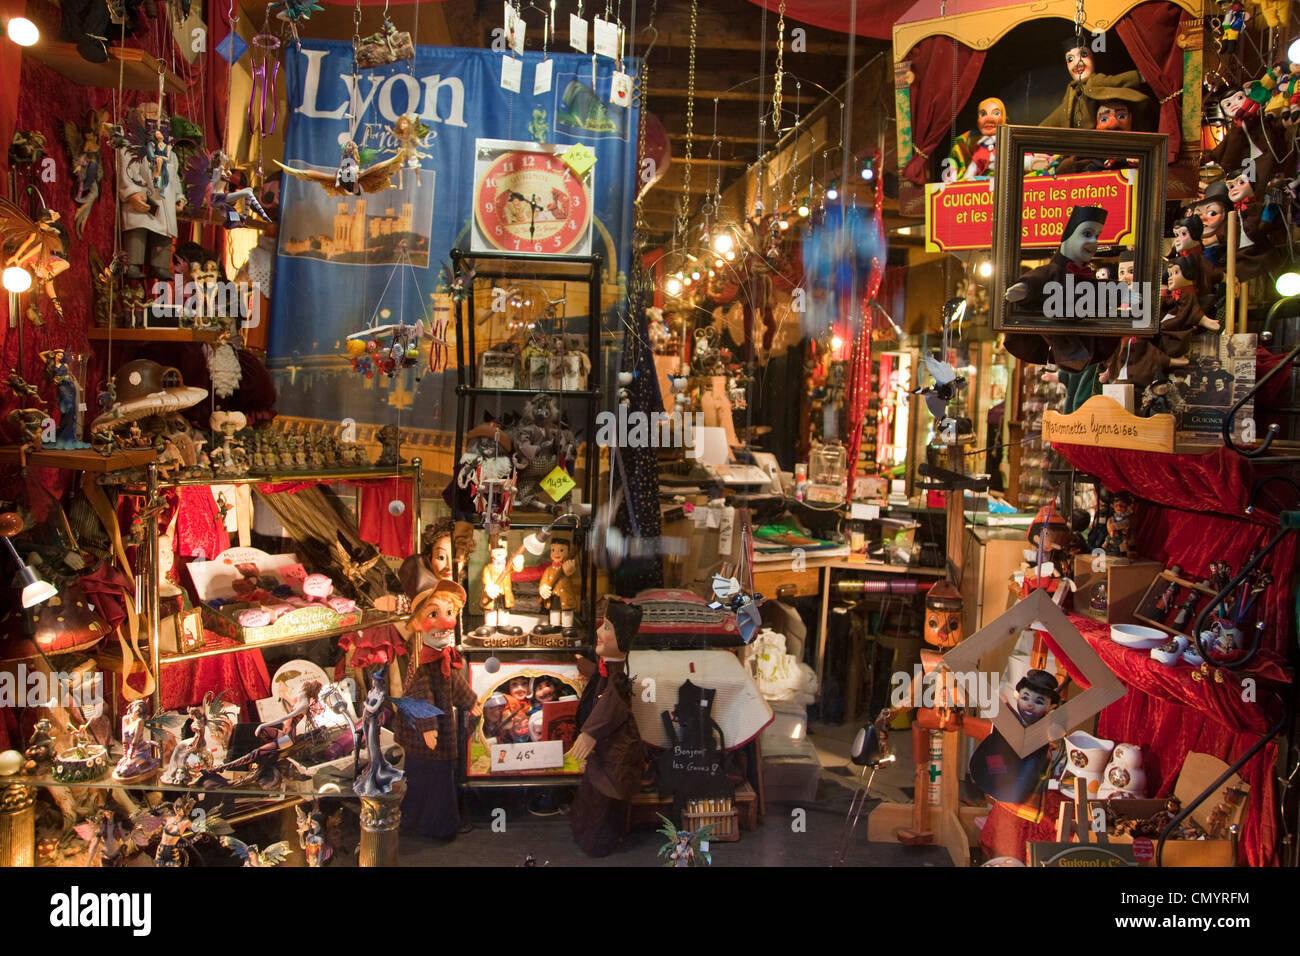 Shop for local handicraft, wooden puppets, Vieux Lyon, Rhone Alps, France - Stock Image